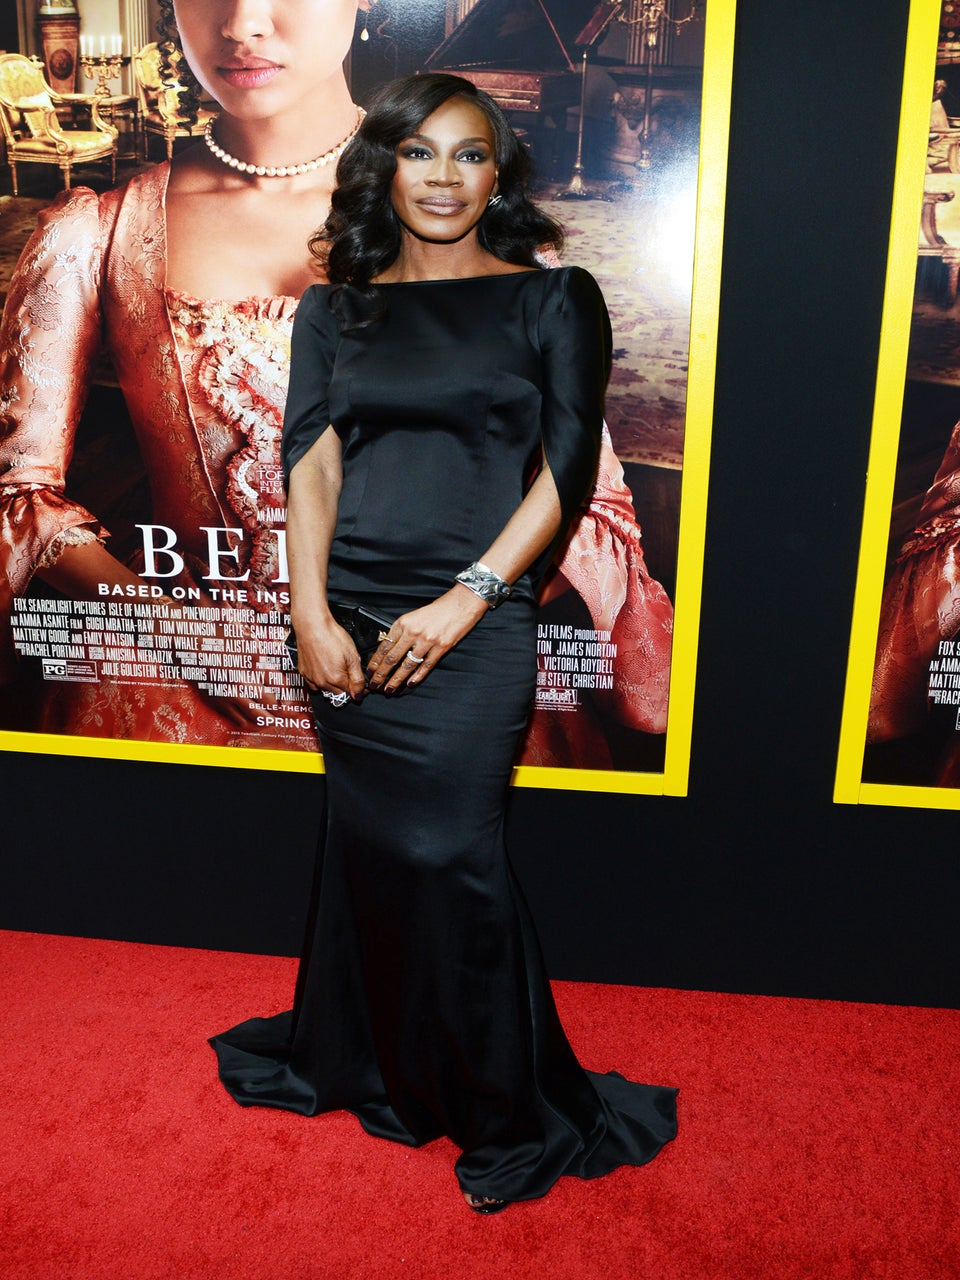 Behind 'Belle': Director Amma Asante Dishes on Inspiration for the New Film